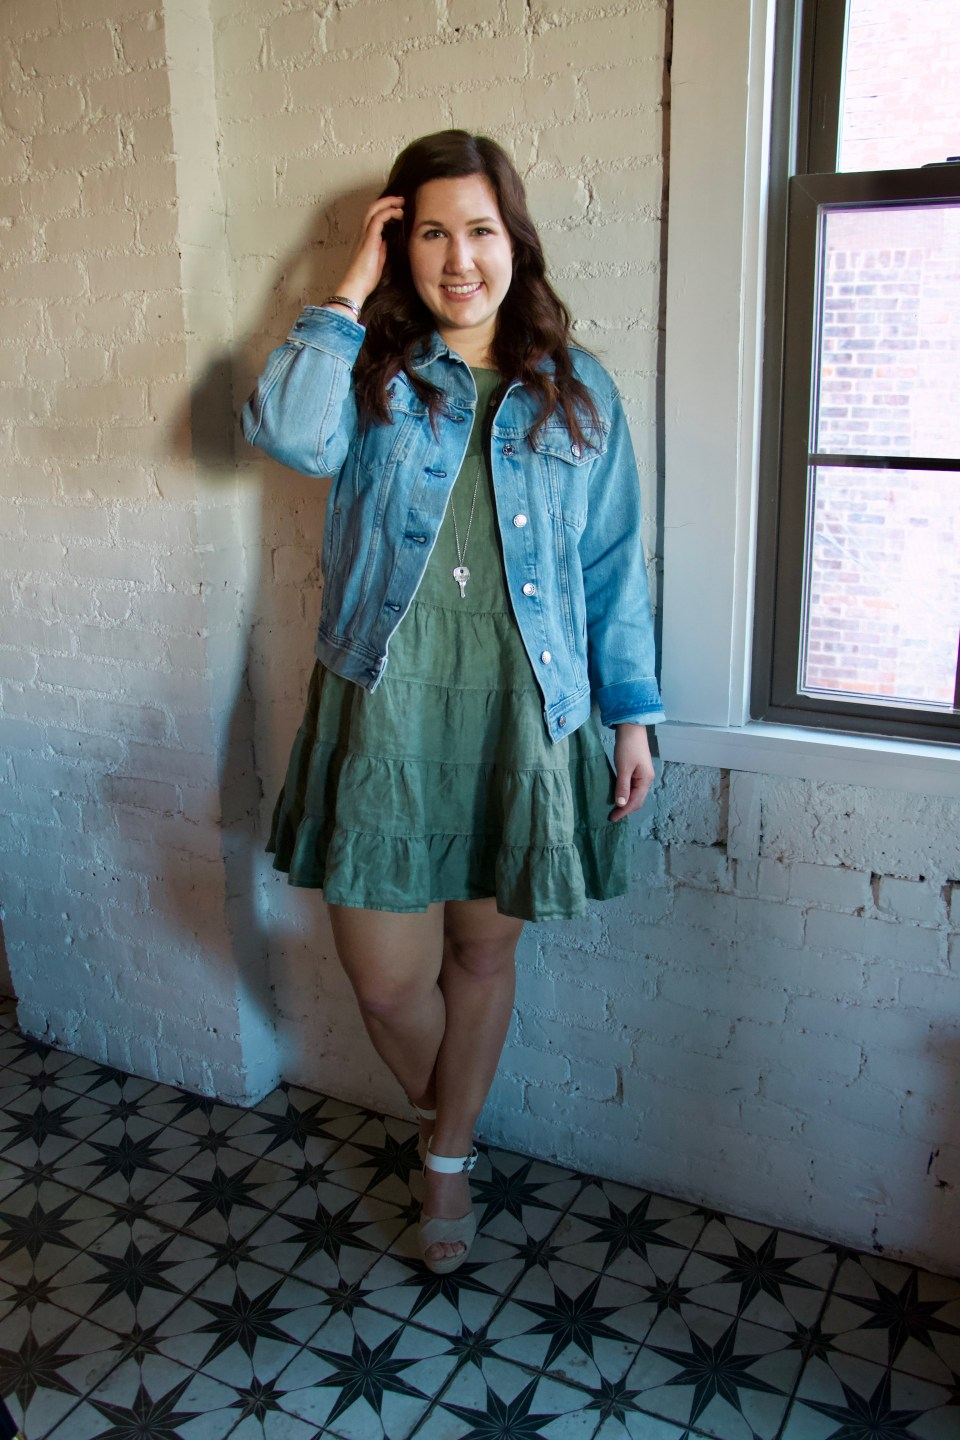 Green Linen Dress and Everlane Denim Jacket